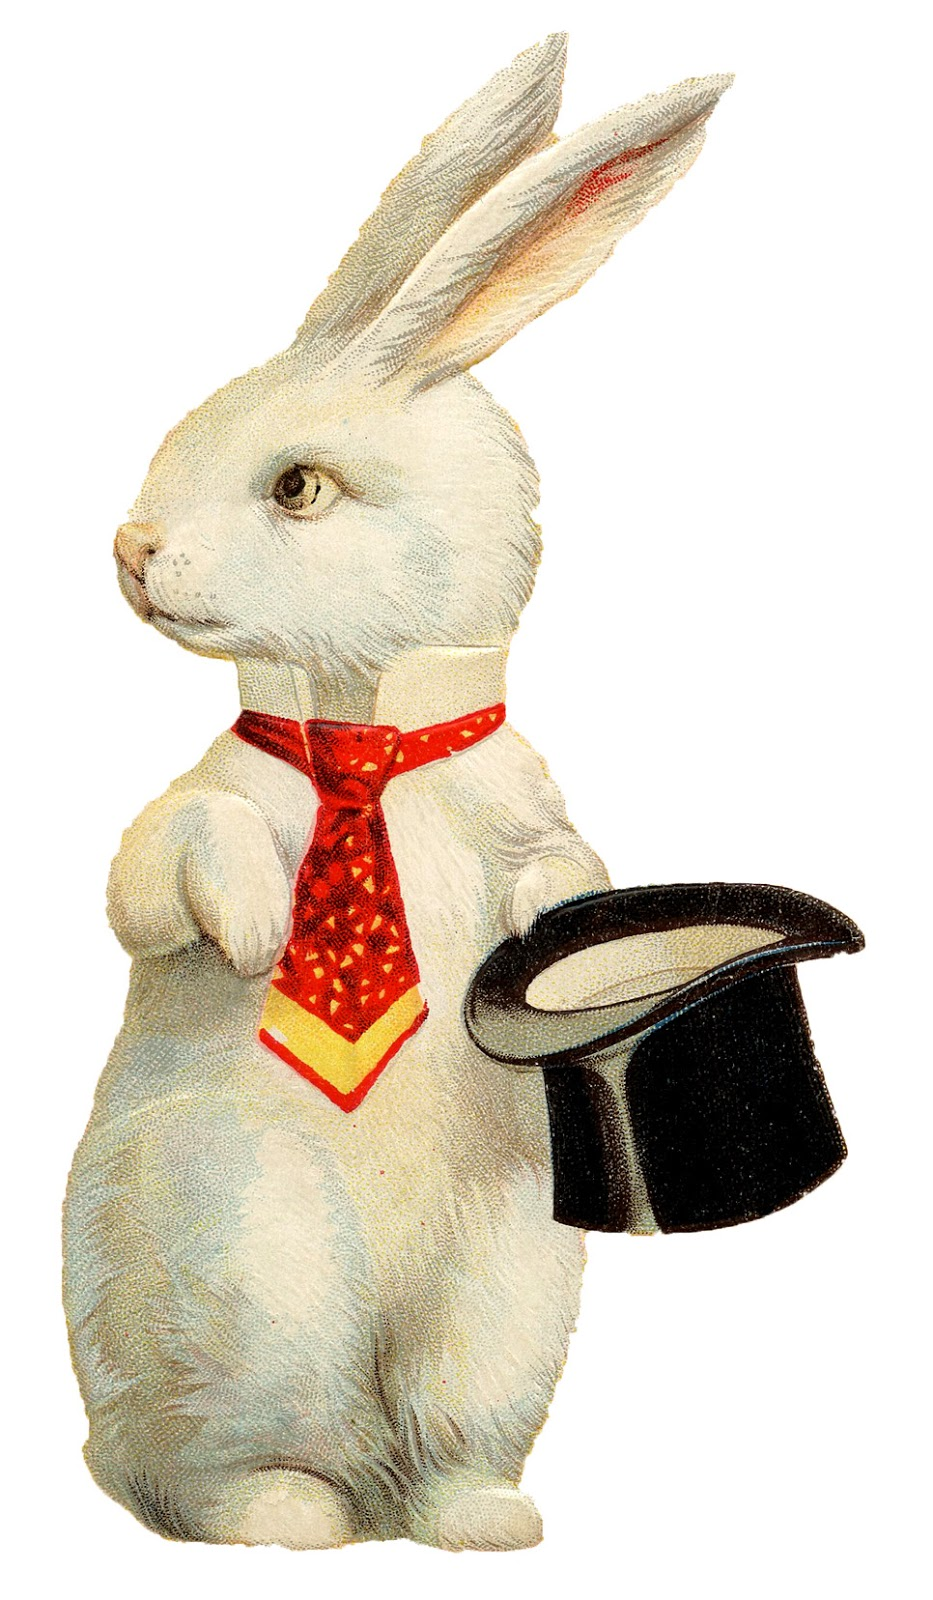 Vintage Easter Image - Quirky White Rabbit with Hat - The ...